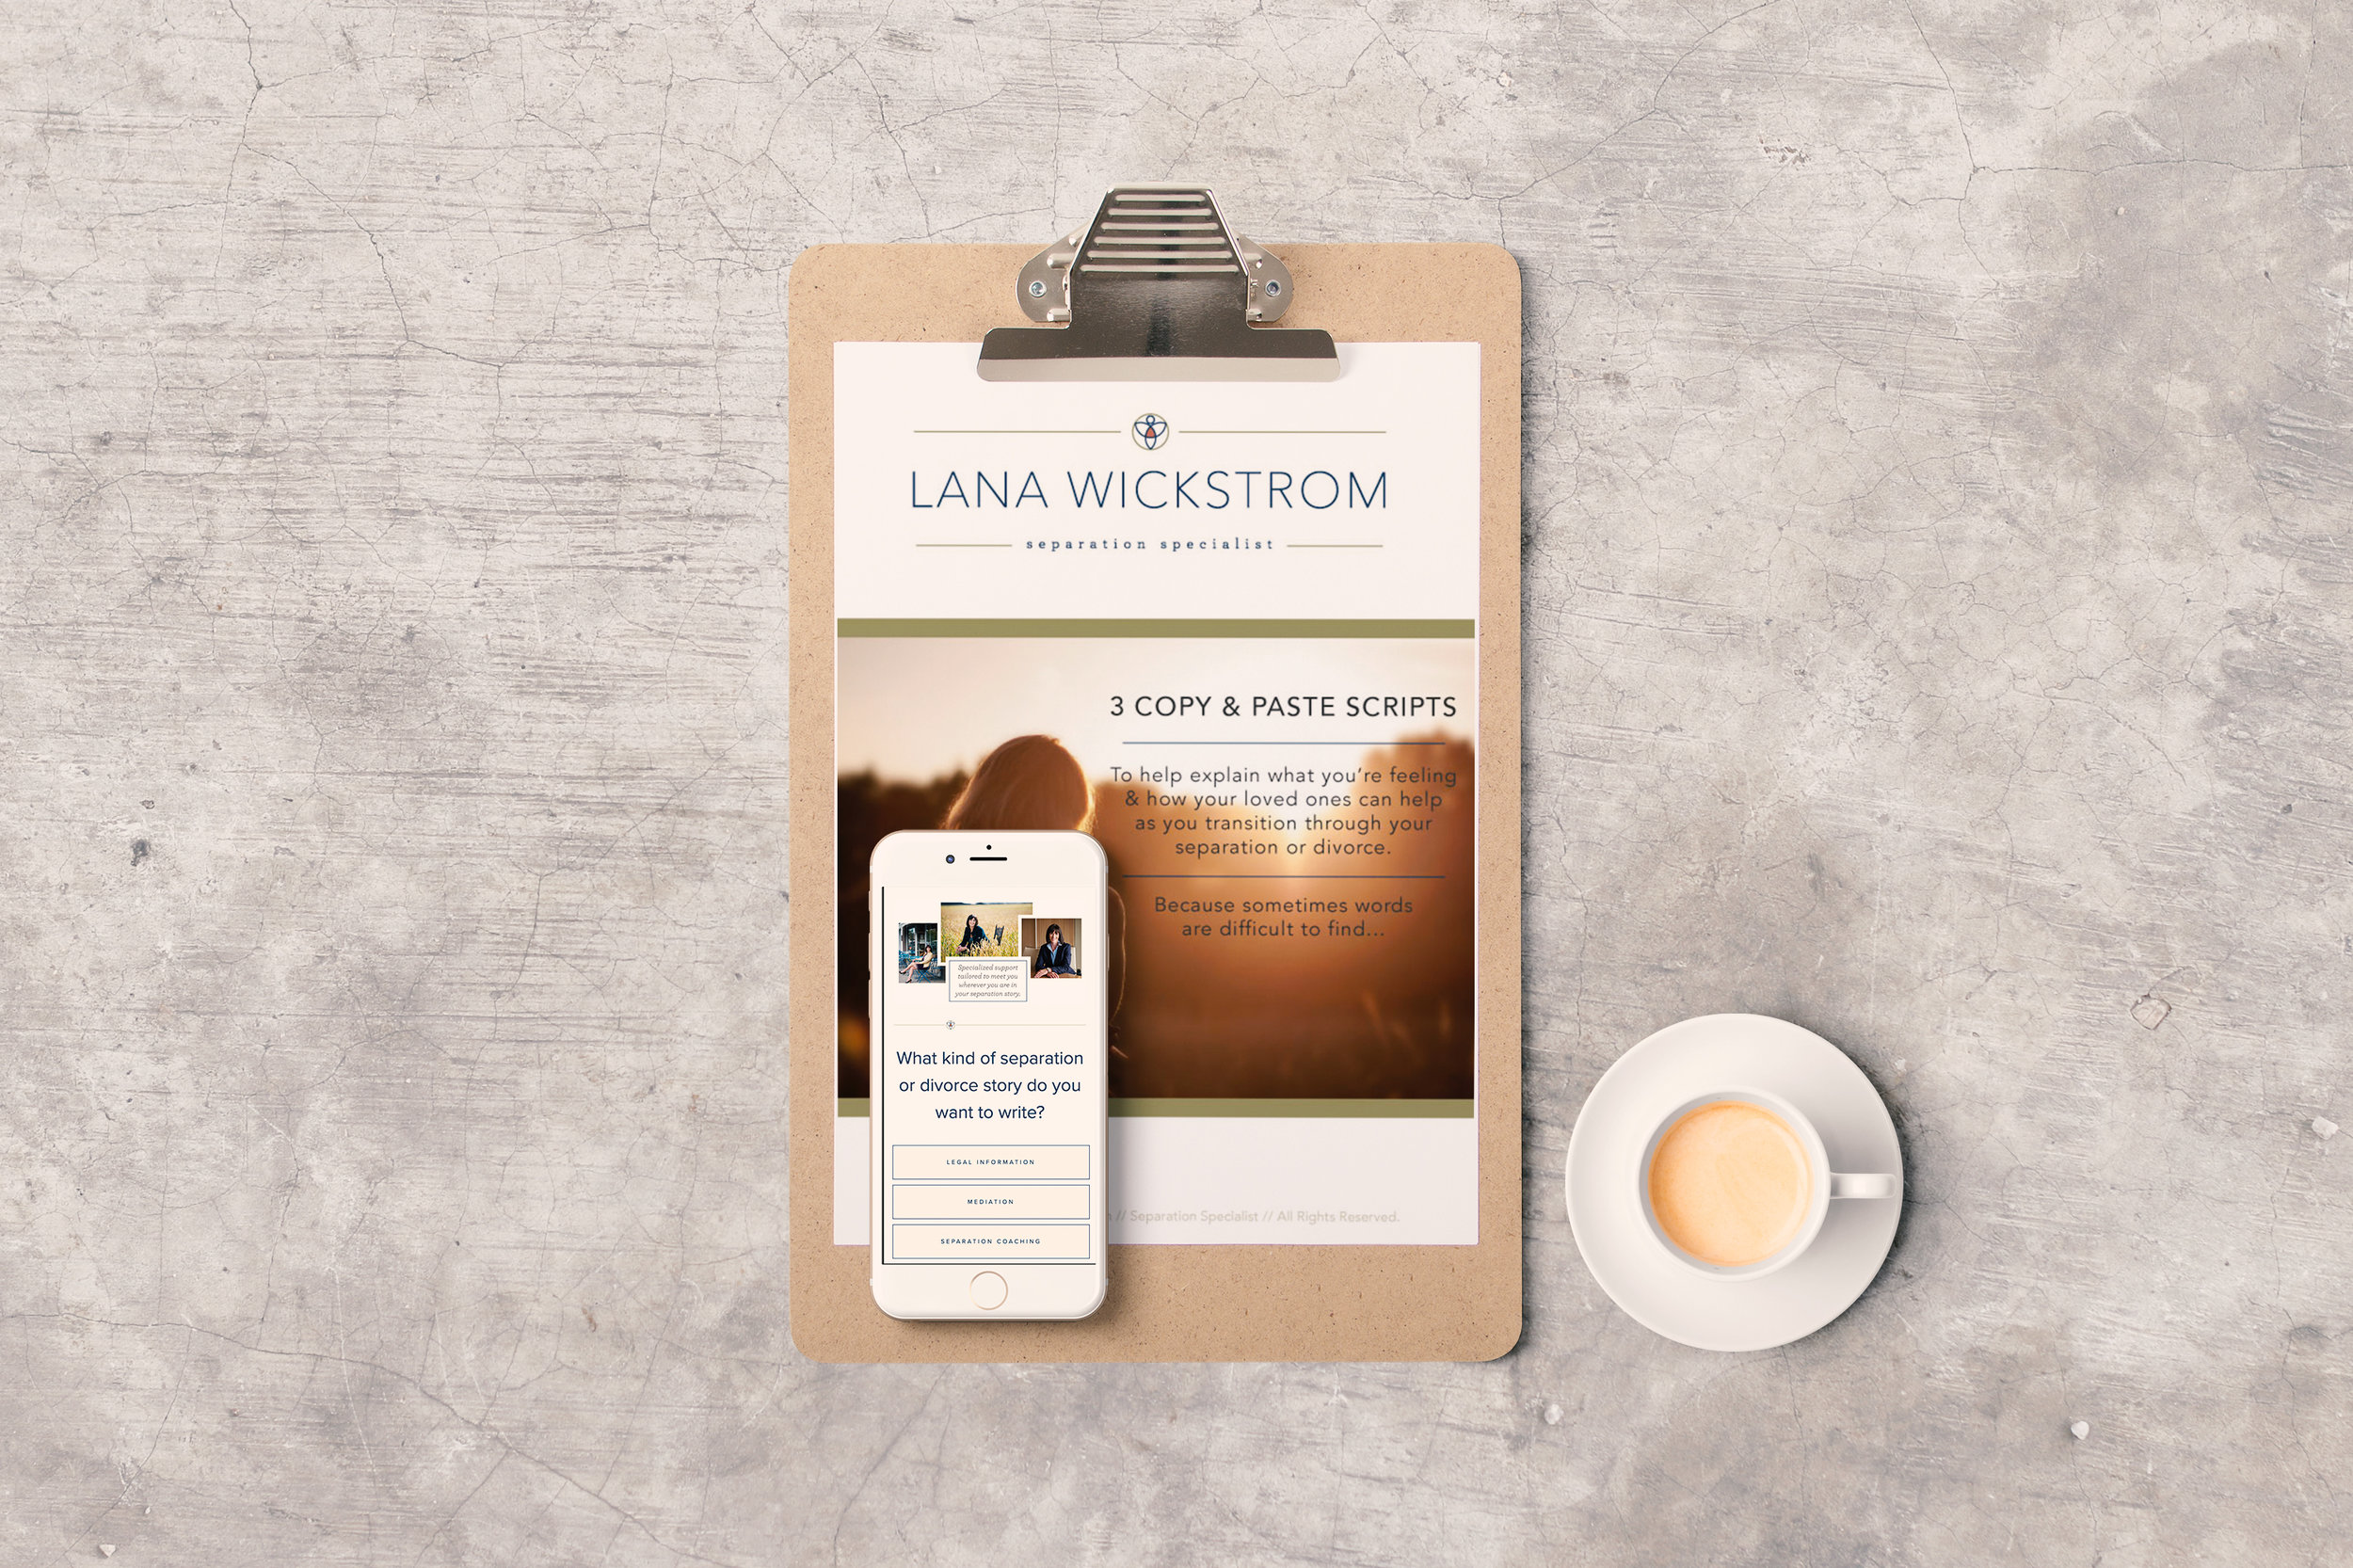 Lana Wickstrom Squarespace website launch story. By Simple & Soulful Creative. Mobile friendly Squarespace website with a useful and gorgeous subscriber opt-in gift!